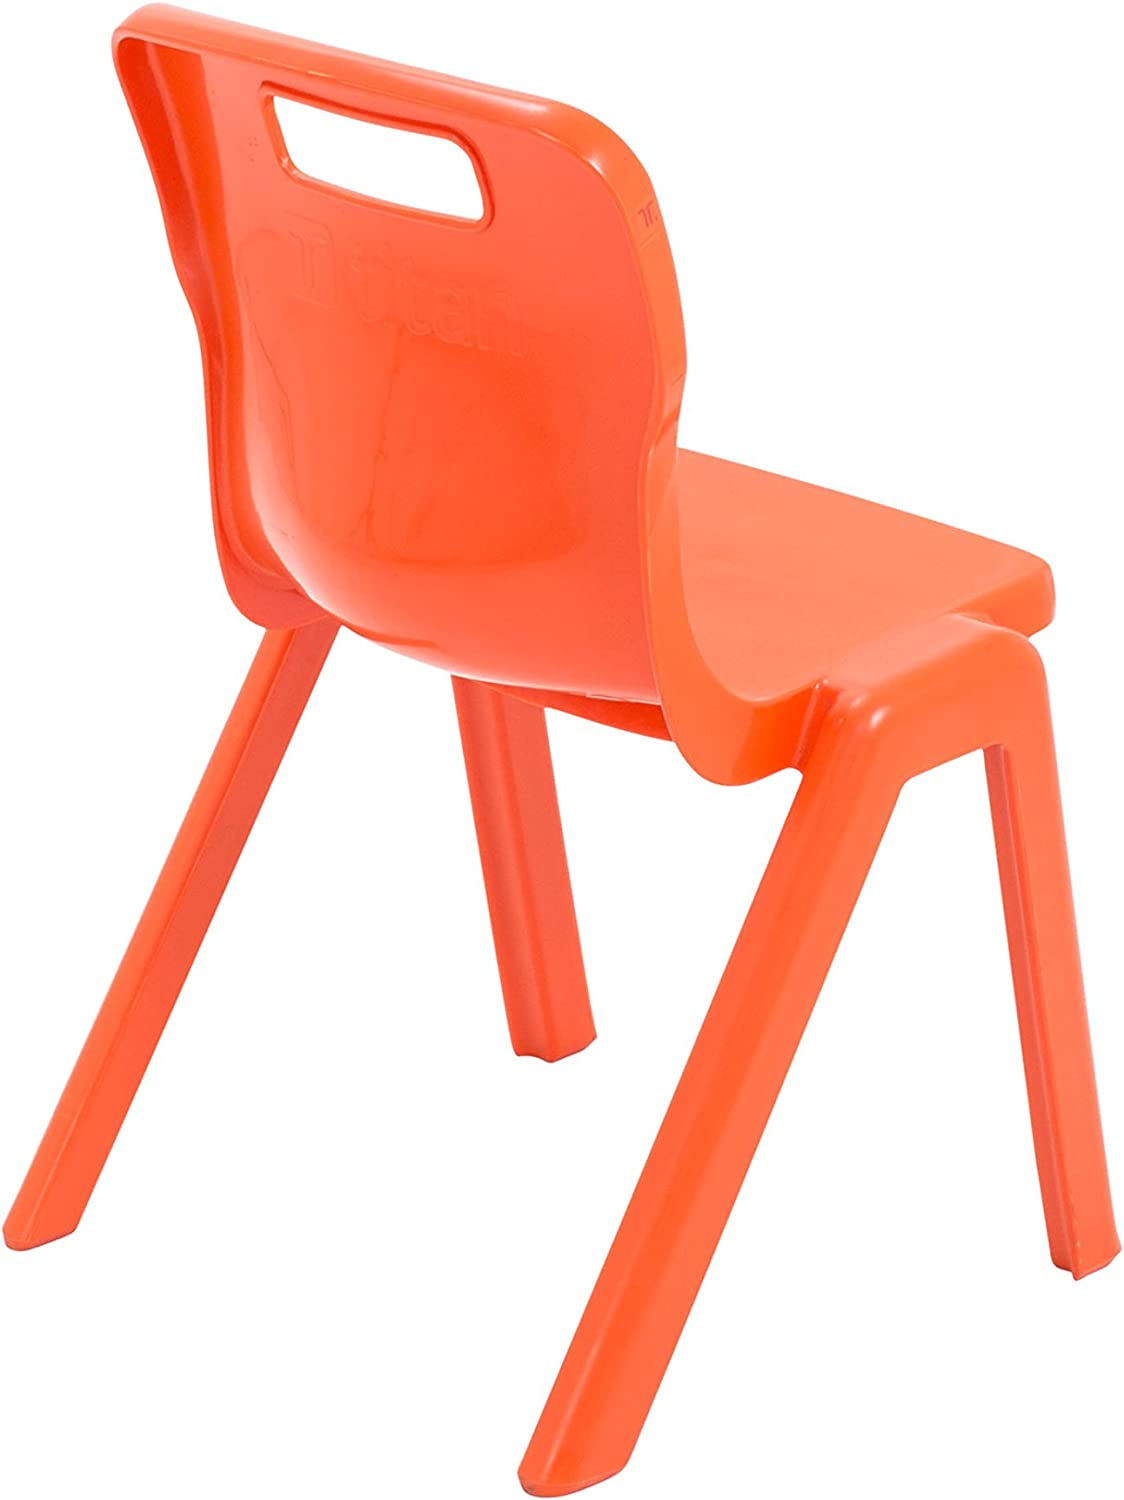 Size 2 for Ages 3-5 Years Orange Pack of 3 Plastic Titan One Piece Classroom Chair